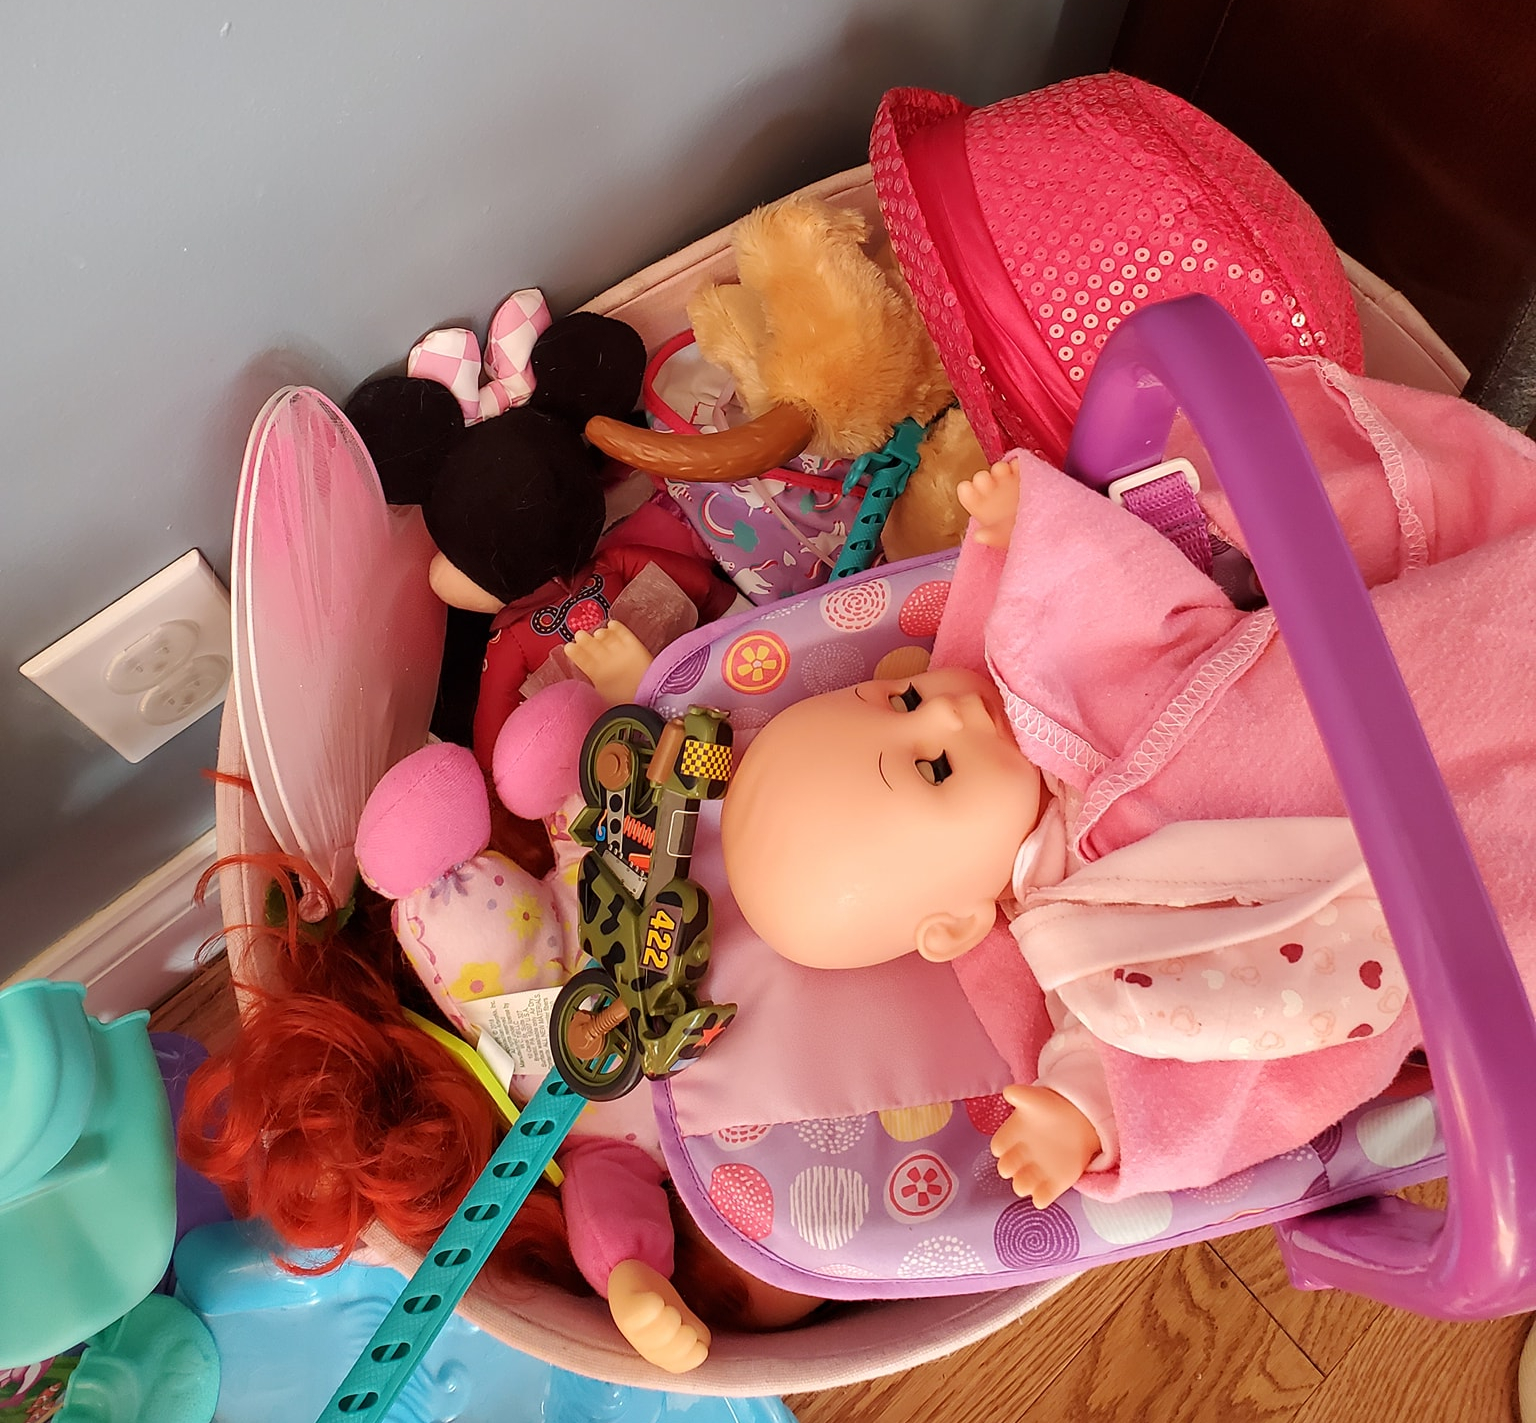 photo of a bin of a child's toys, including dolls, a hat, a motorcyle, dress up fairy wings, and a pair of children's glasses